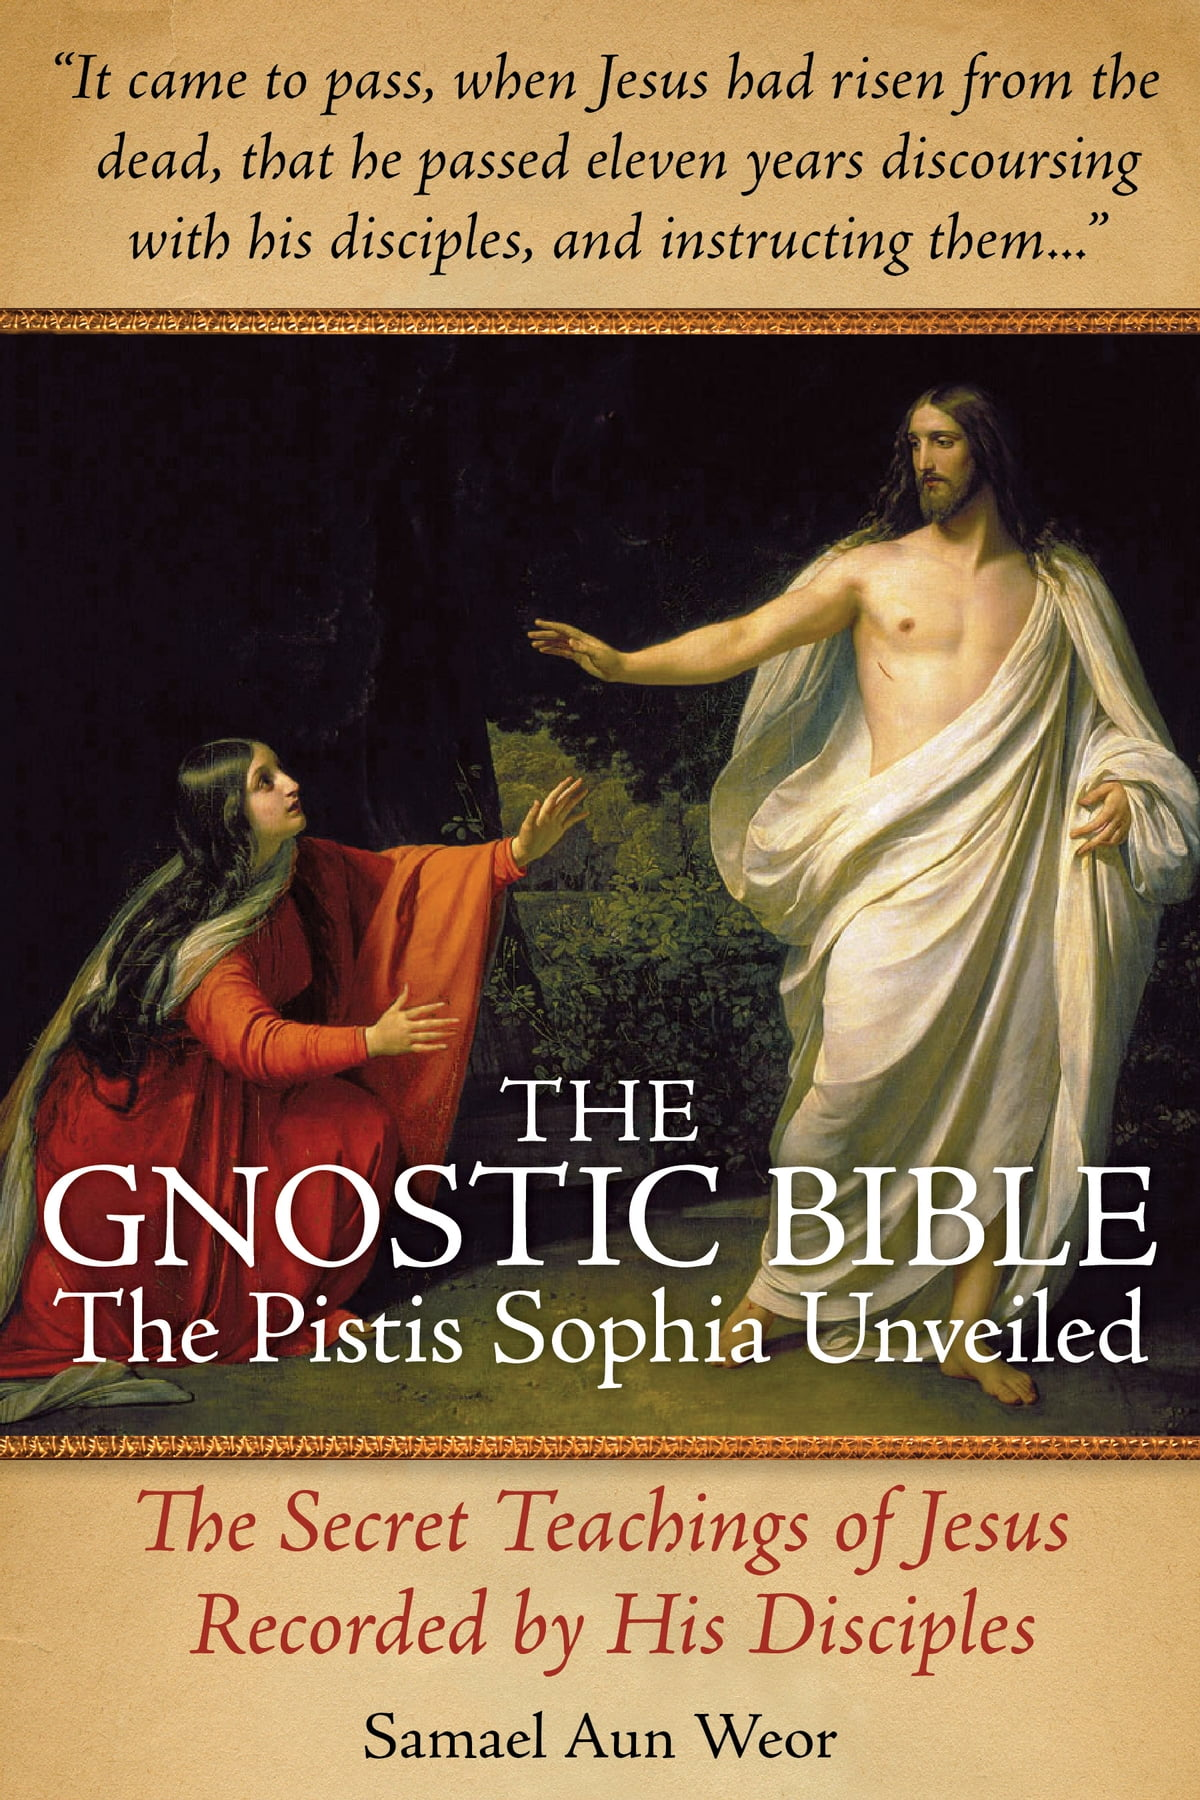 The Gnostic Bible: The Pistis Sophia Unveiled eBook by Samael Aun Weor -  9781934206645 | Rakuten Kobo